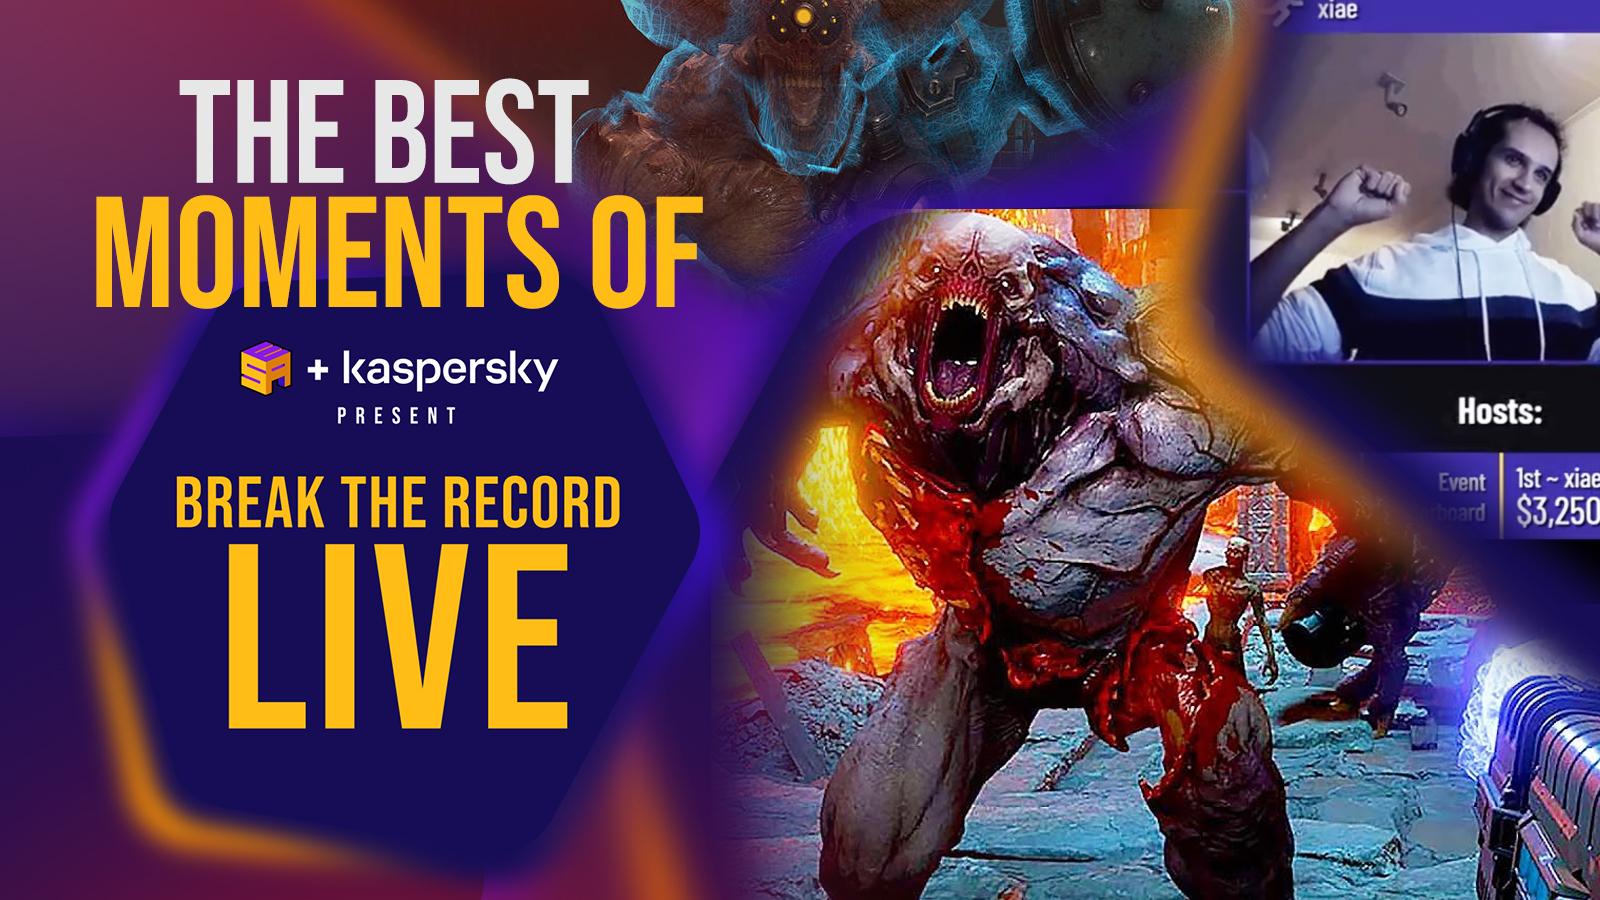 Break the Record: LIVE highlights